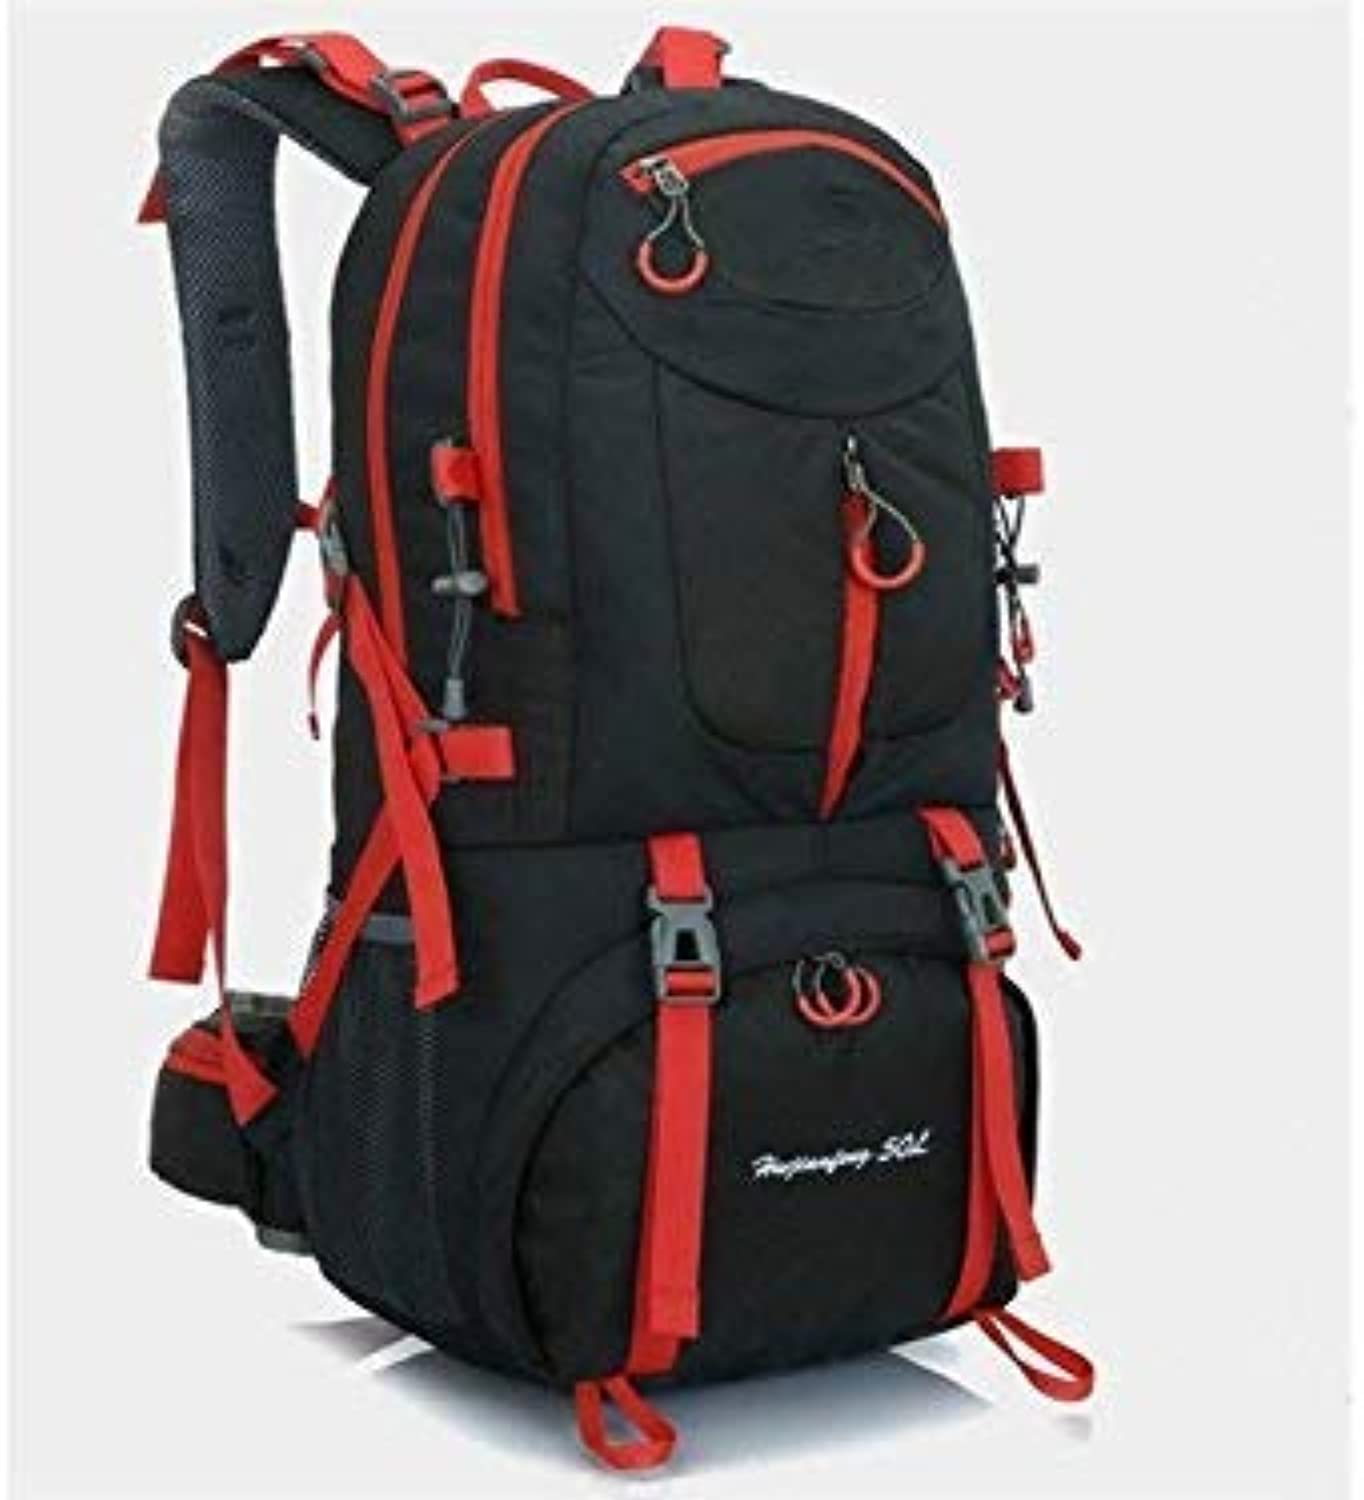 Outdoor Bags, Outdoor and Indoor 60L Sports Outdoor Backpack Climbing Bag Hiking Camping Backpack(Black)